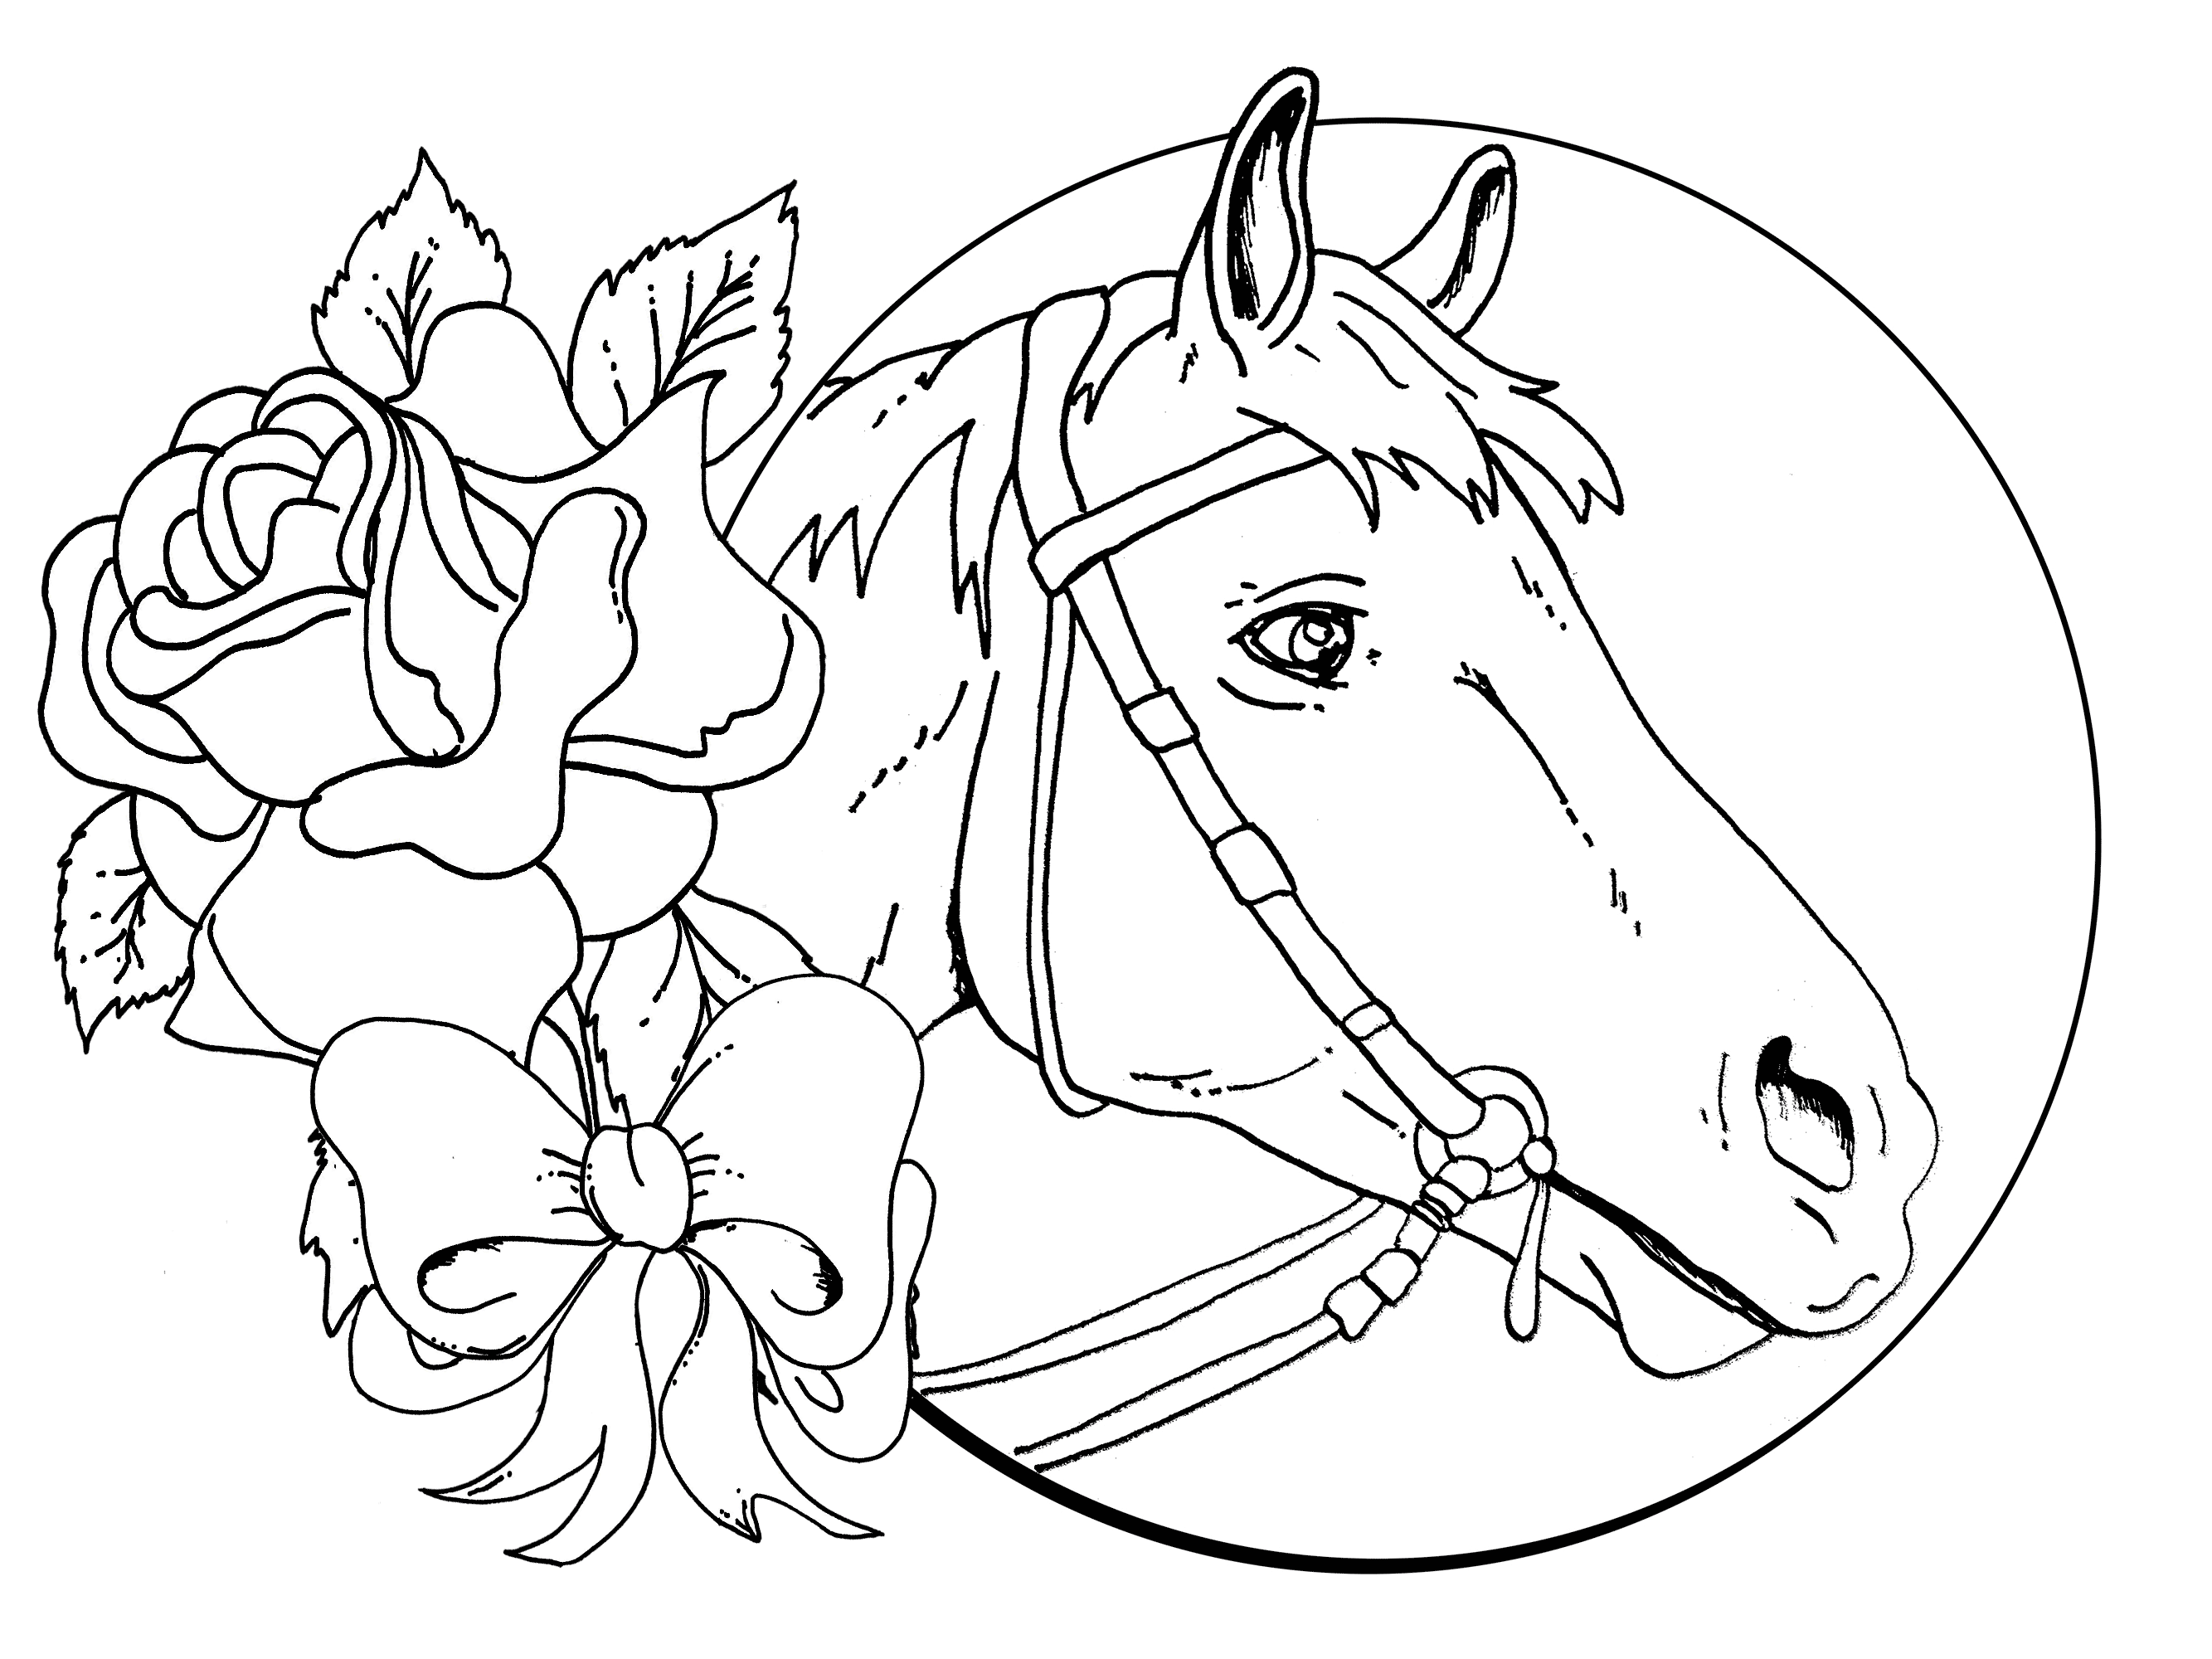 Flower drawings on pinterest dover publications coloring pages and - Horse Color Page For The Cowboy Lovers Kiddo Shelter